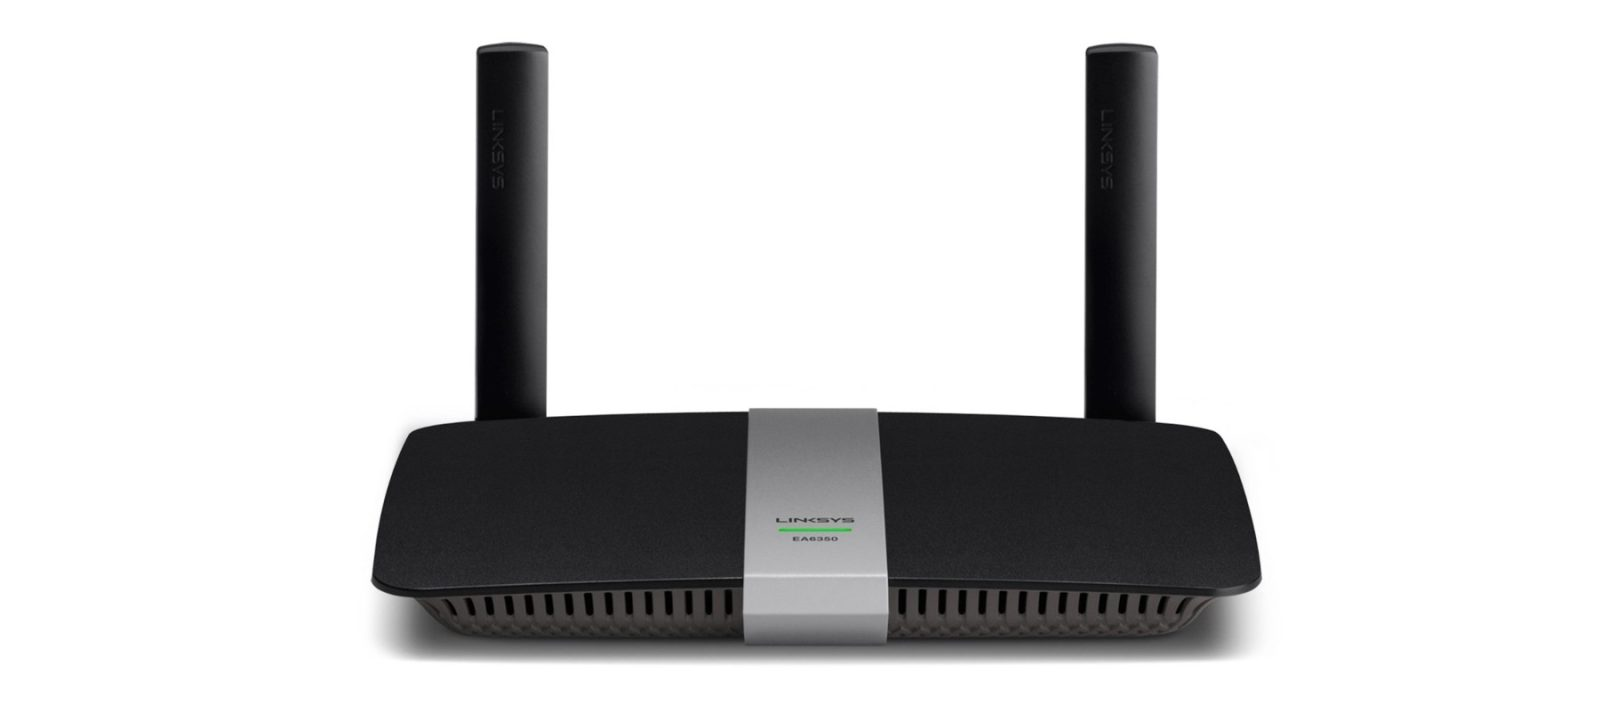 Dual Band 9to5toys Edimax Br 6478ac V2 Ac1200 Gigabit Wifi Router